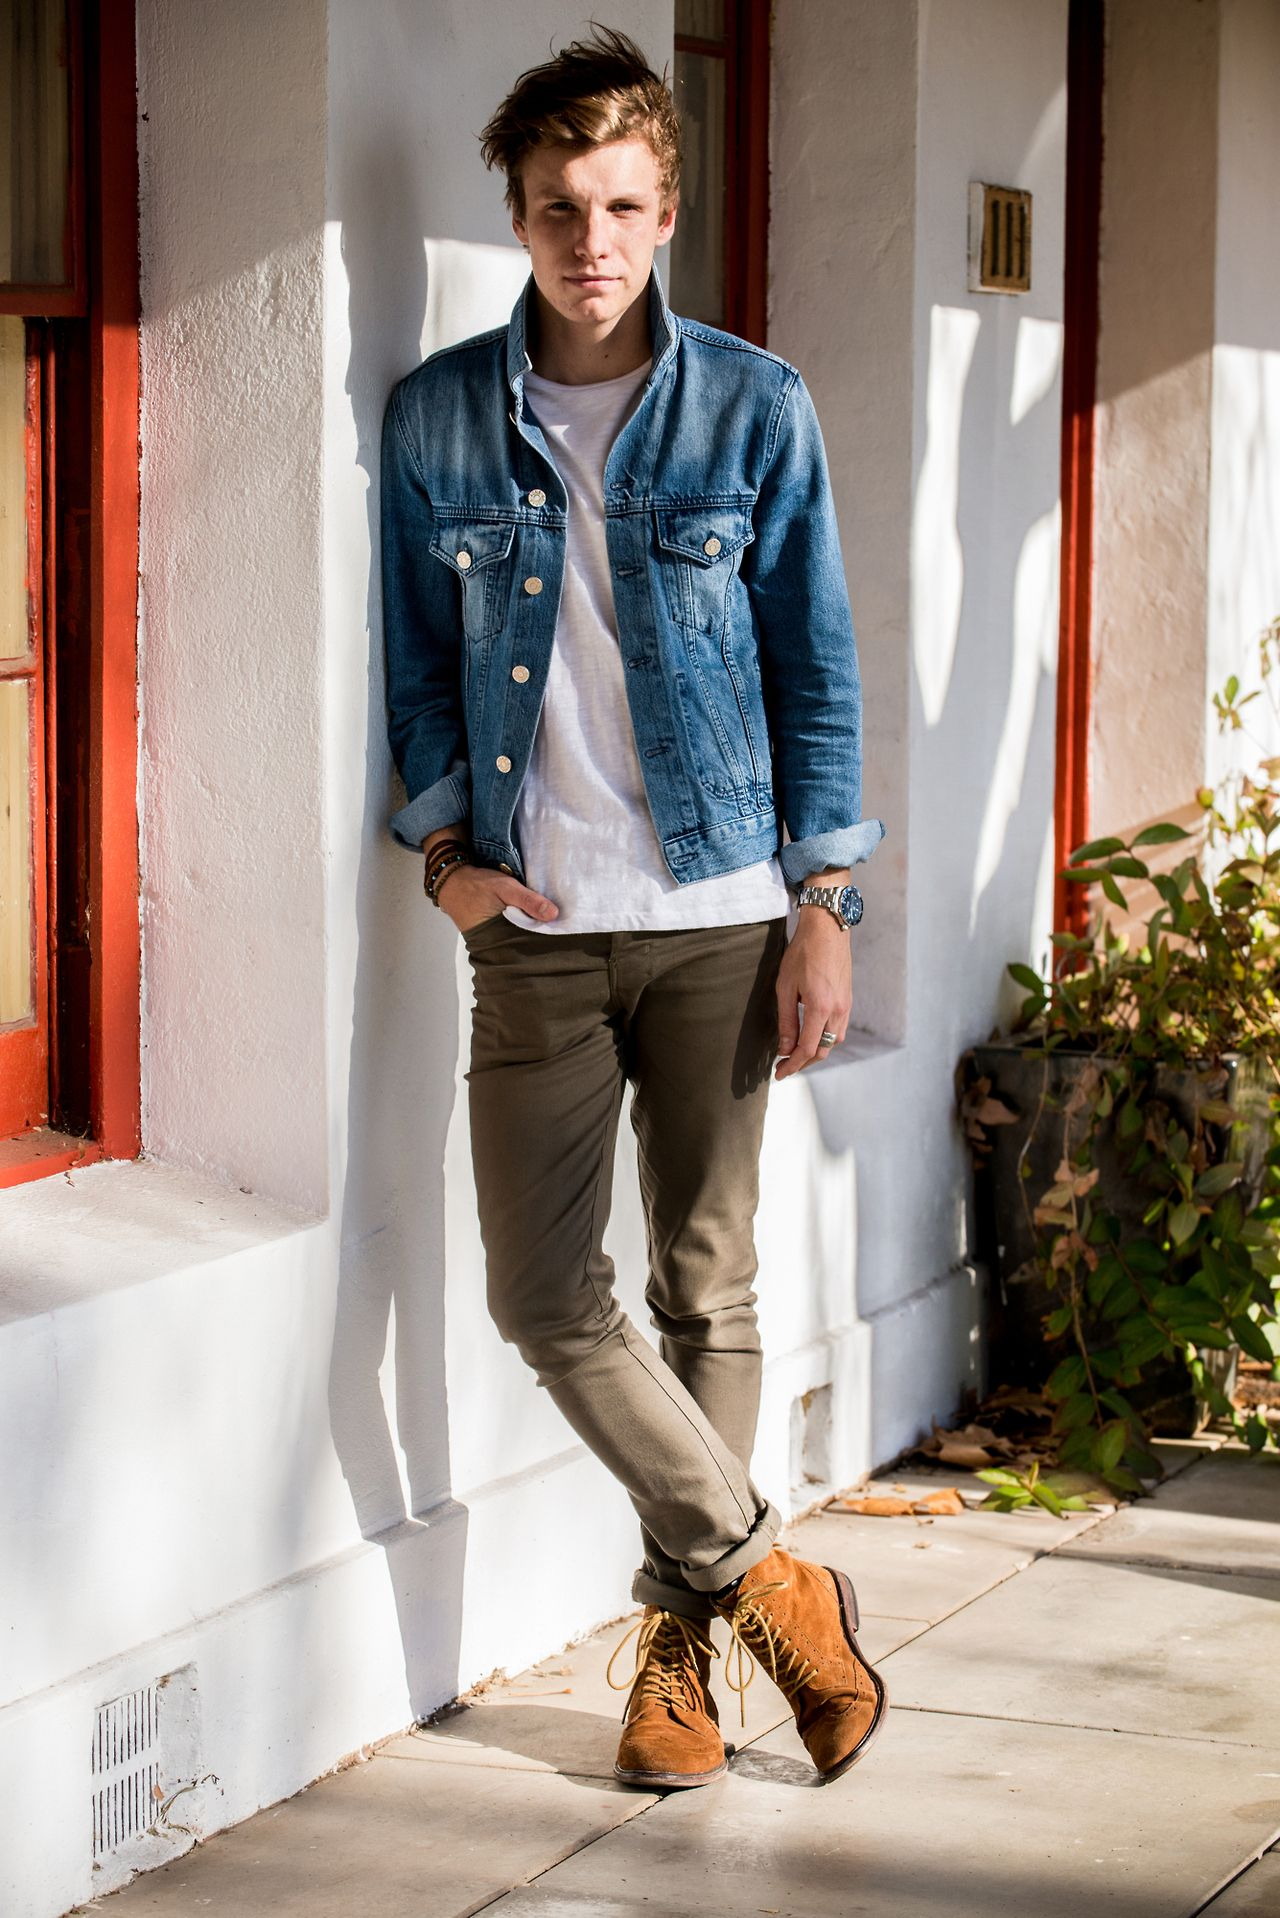 Pin By Omaha Love Matchmaking On Stylish Mens Clothing Styles Mens Fashion Casual Denim Jacket Men [ 1918 x 1280 Pixel ]